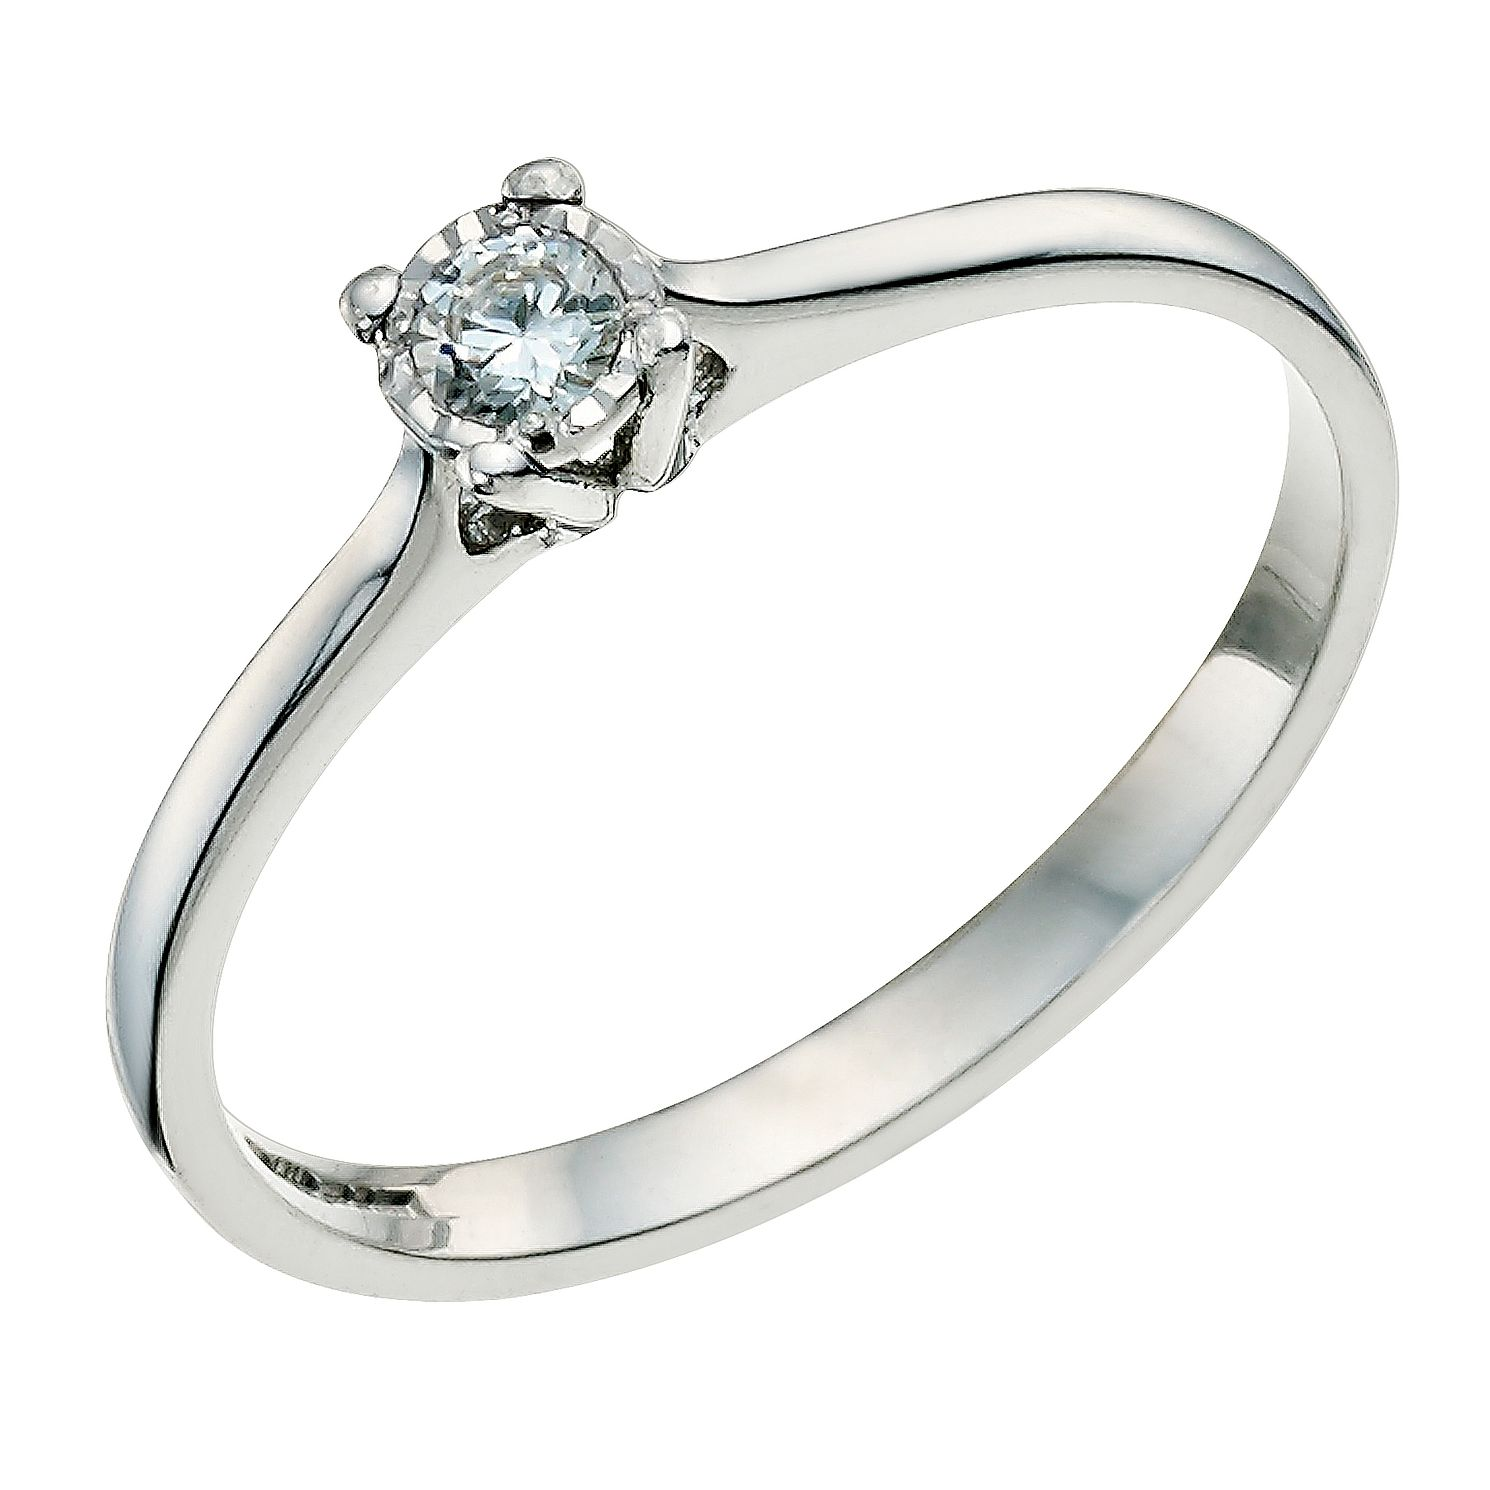 f solitaire zadok ring wedding diamond rings engagement g shop simon classic romance